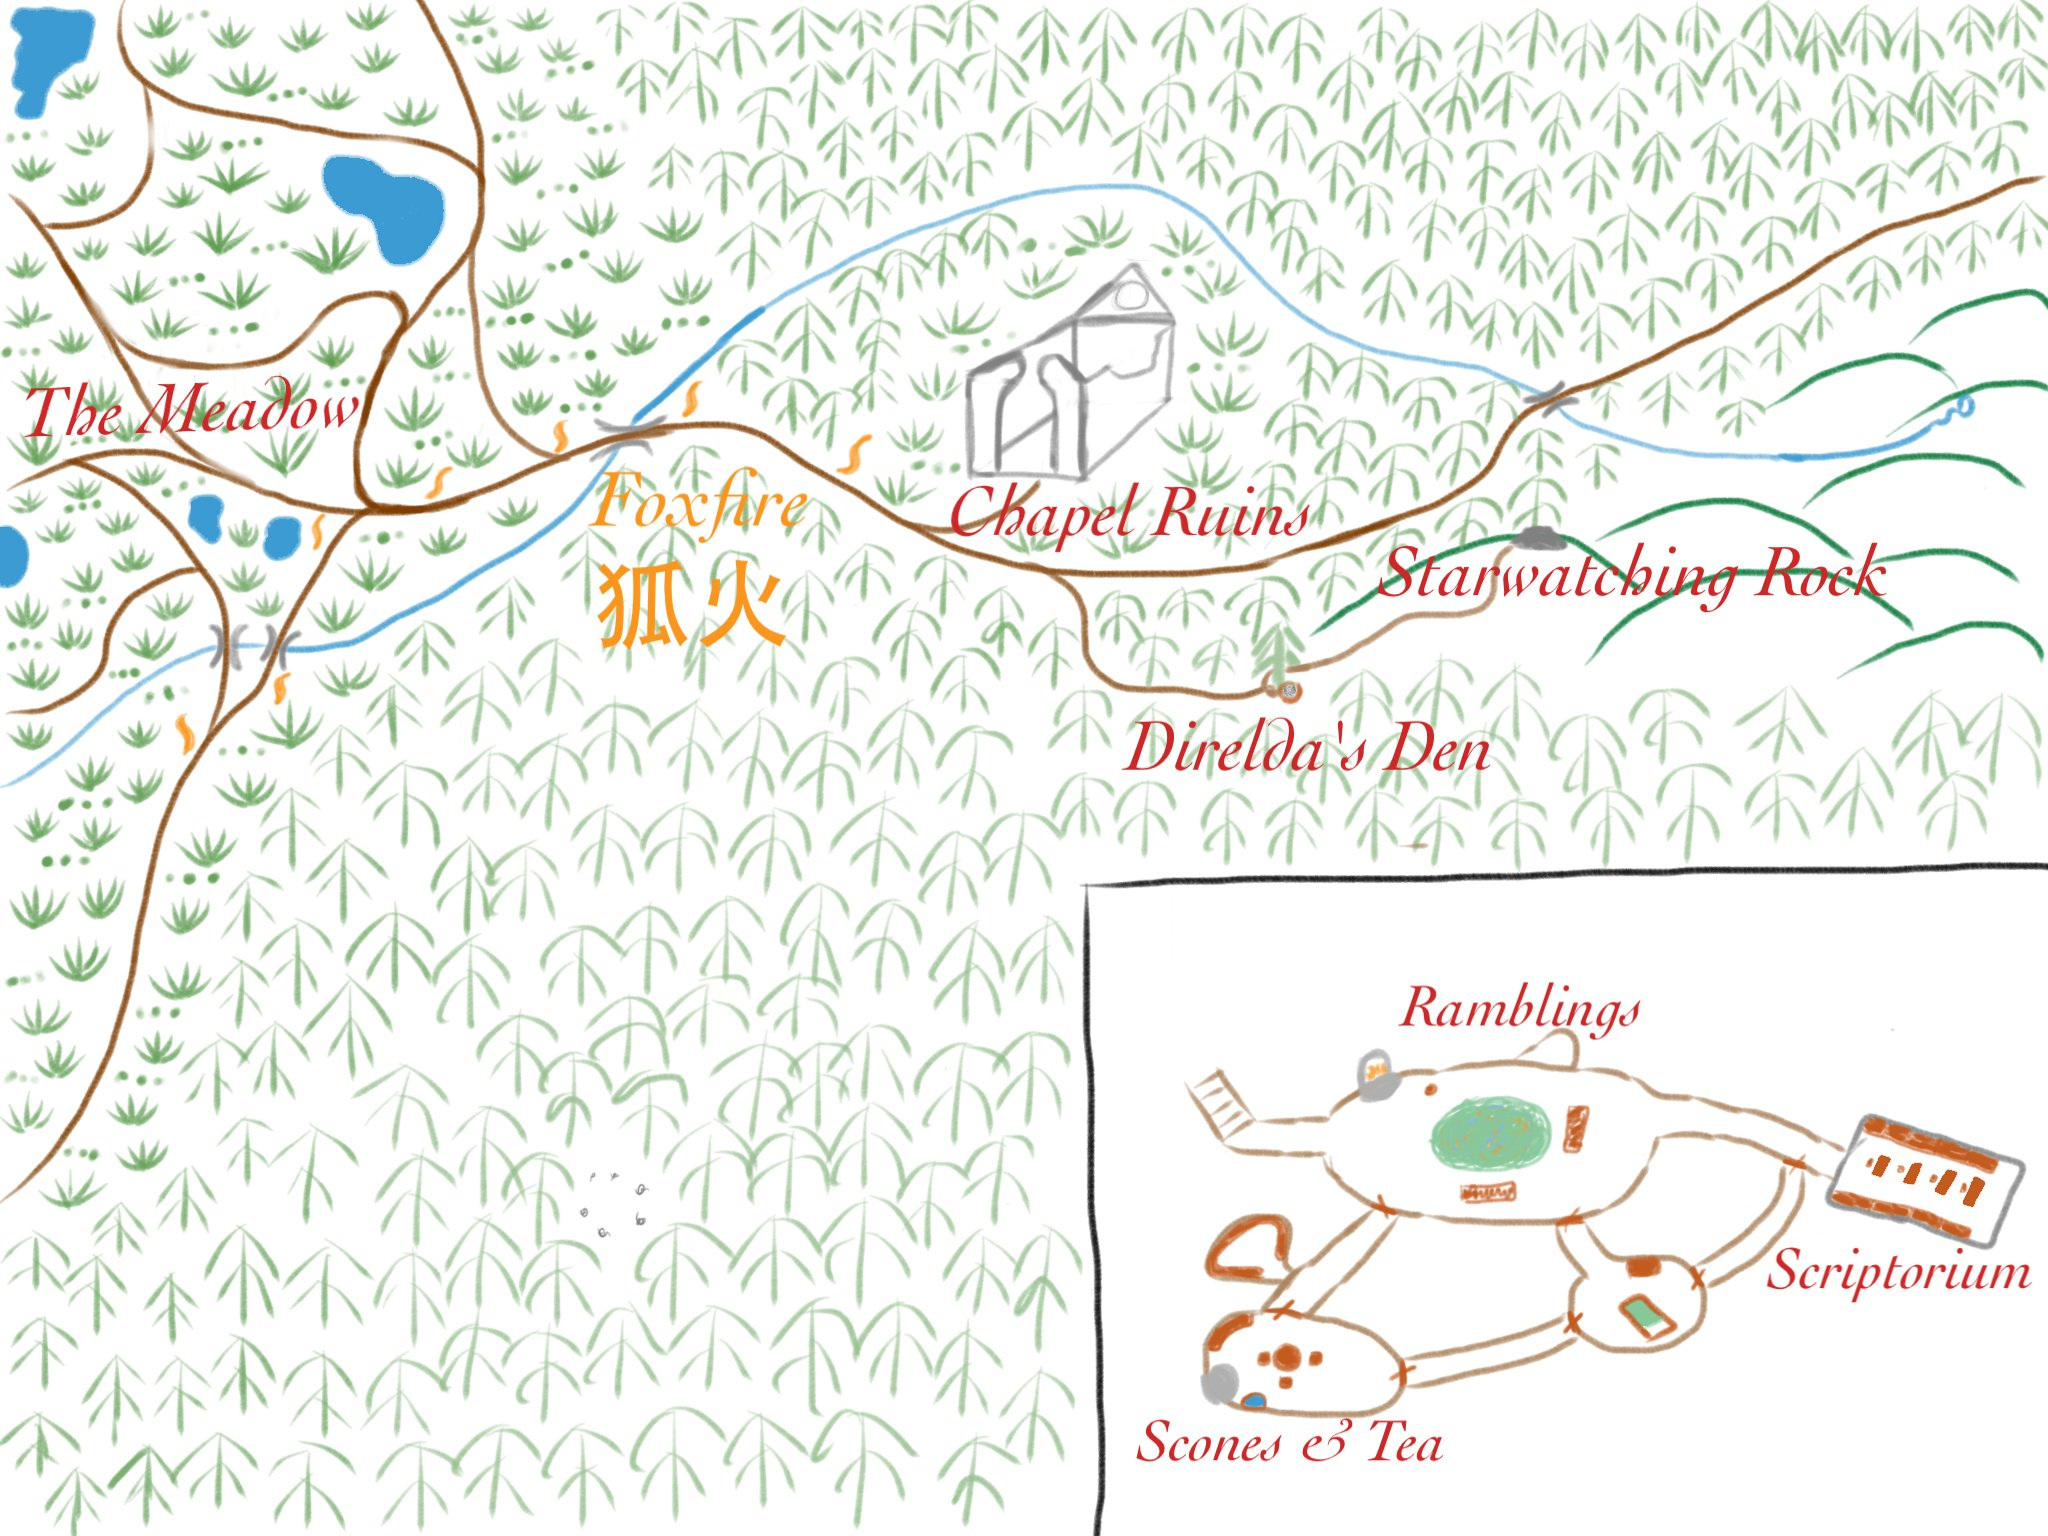 A map of Direlda's Den